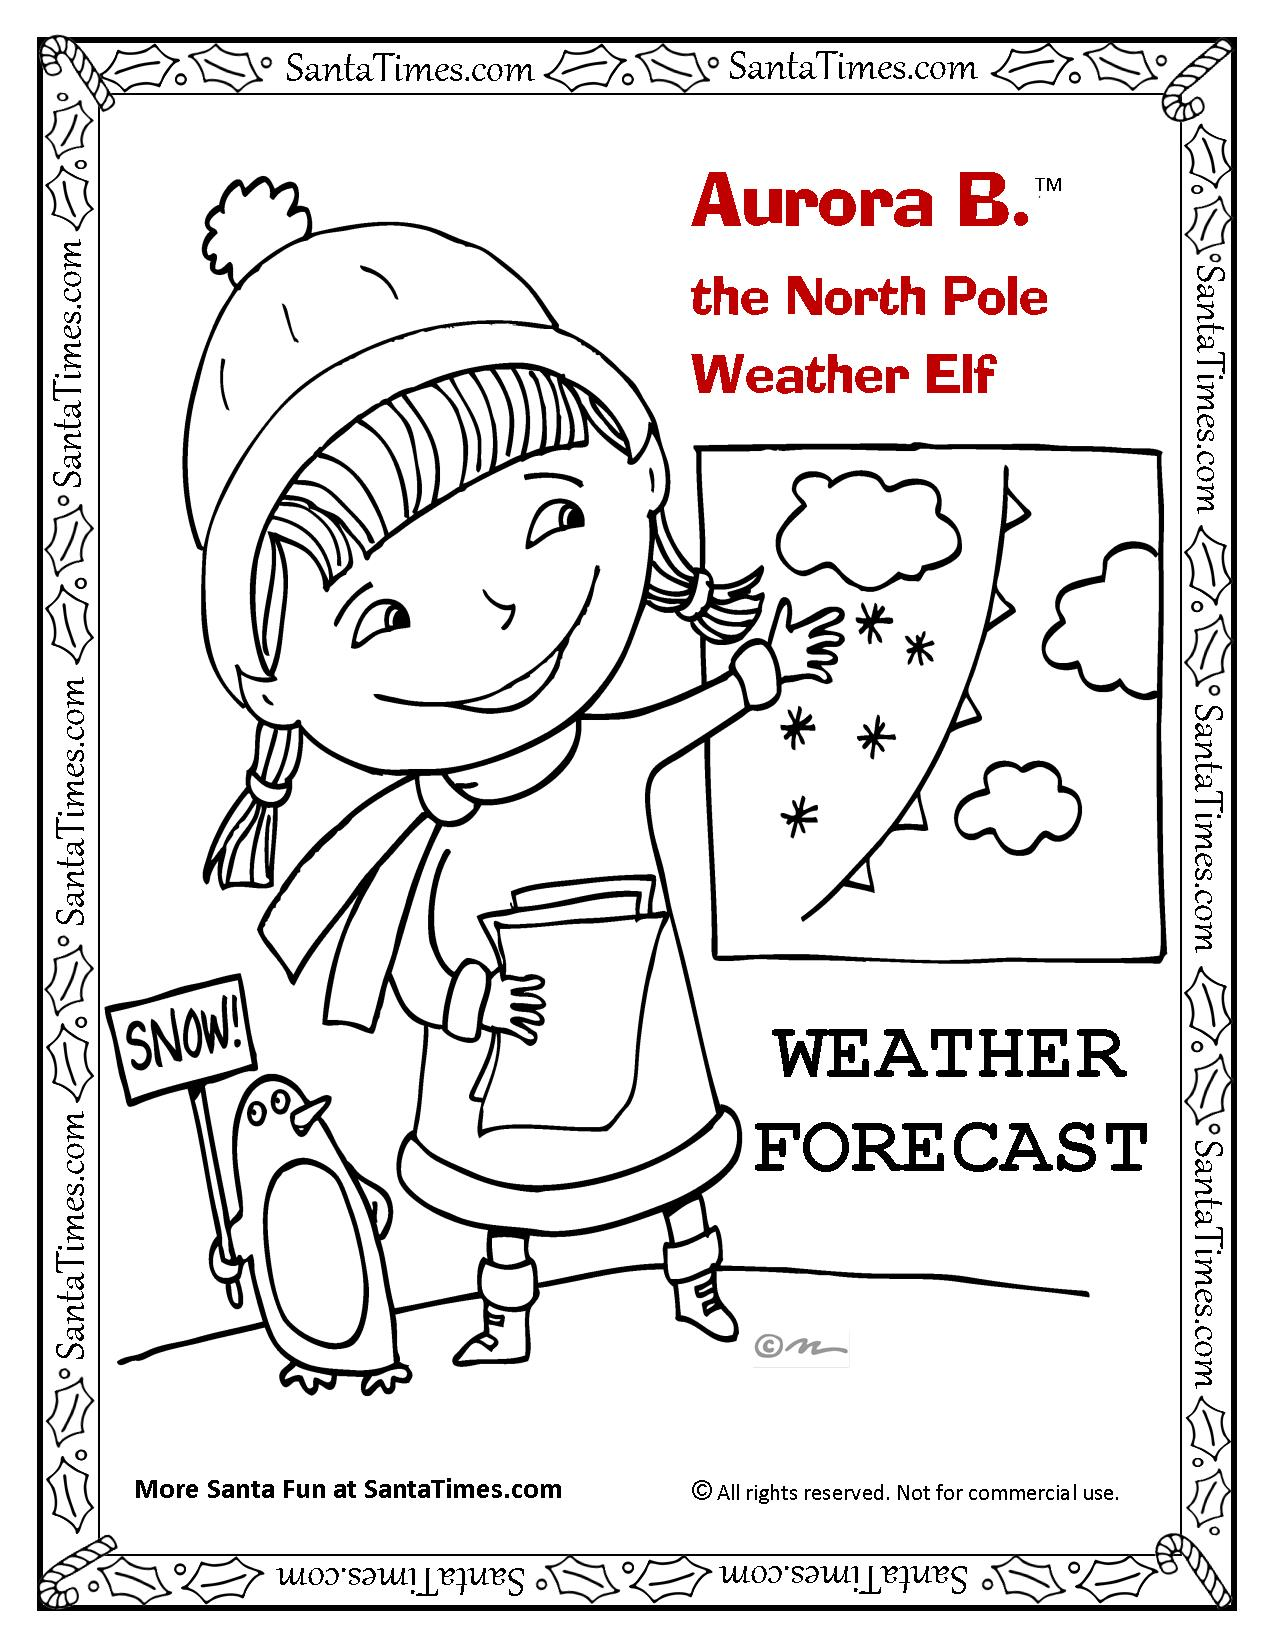 aurora b the weather elf christmas weather forecast